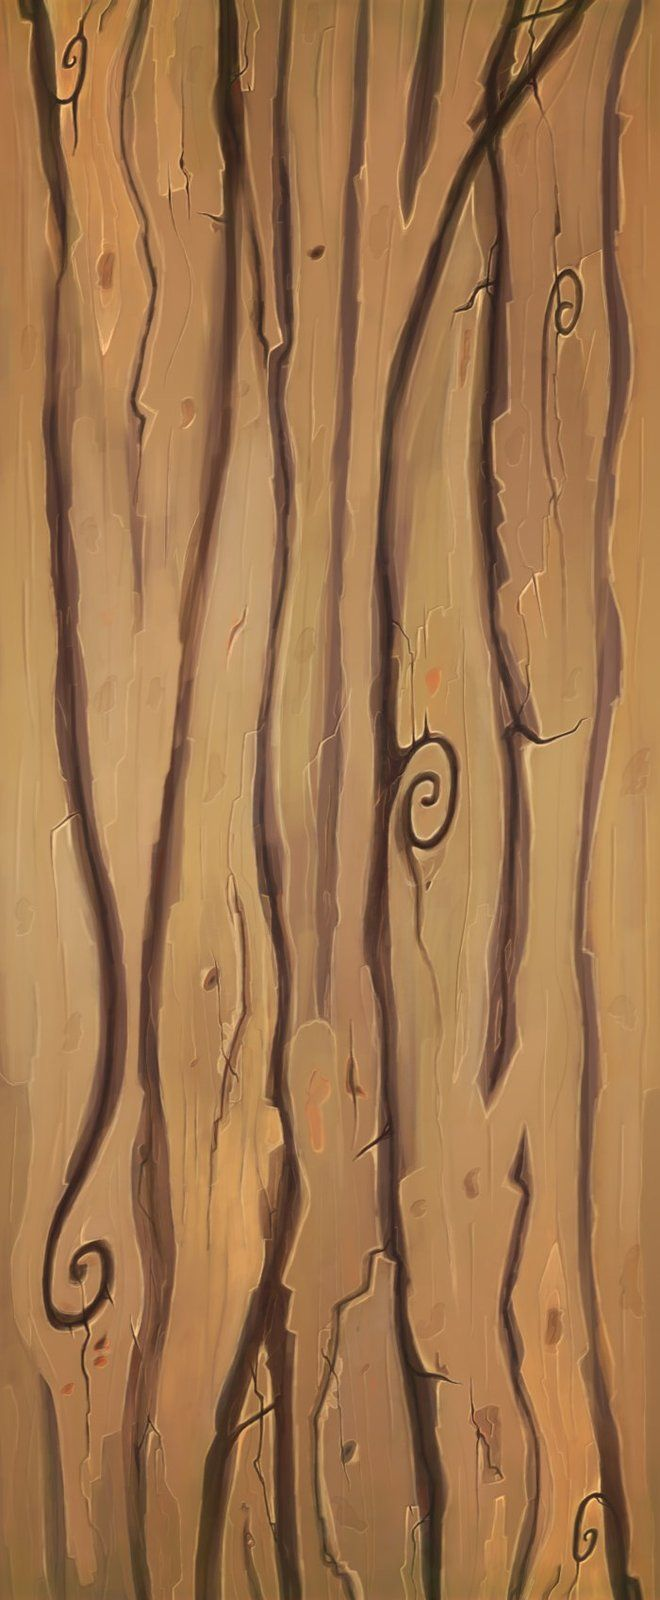 Old wood texture., Andrew Chmir on ArtStation at https://www.artstation.com/artwork/old-wood-texture